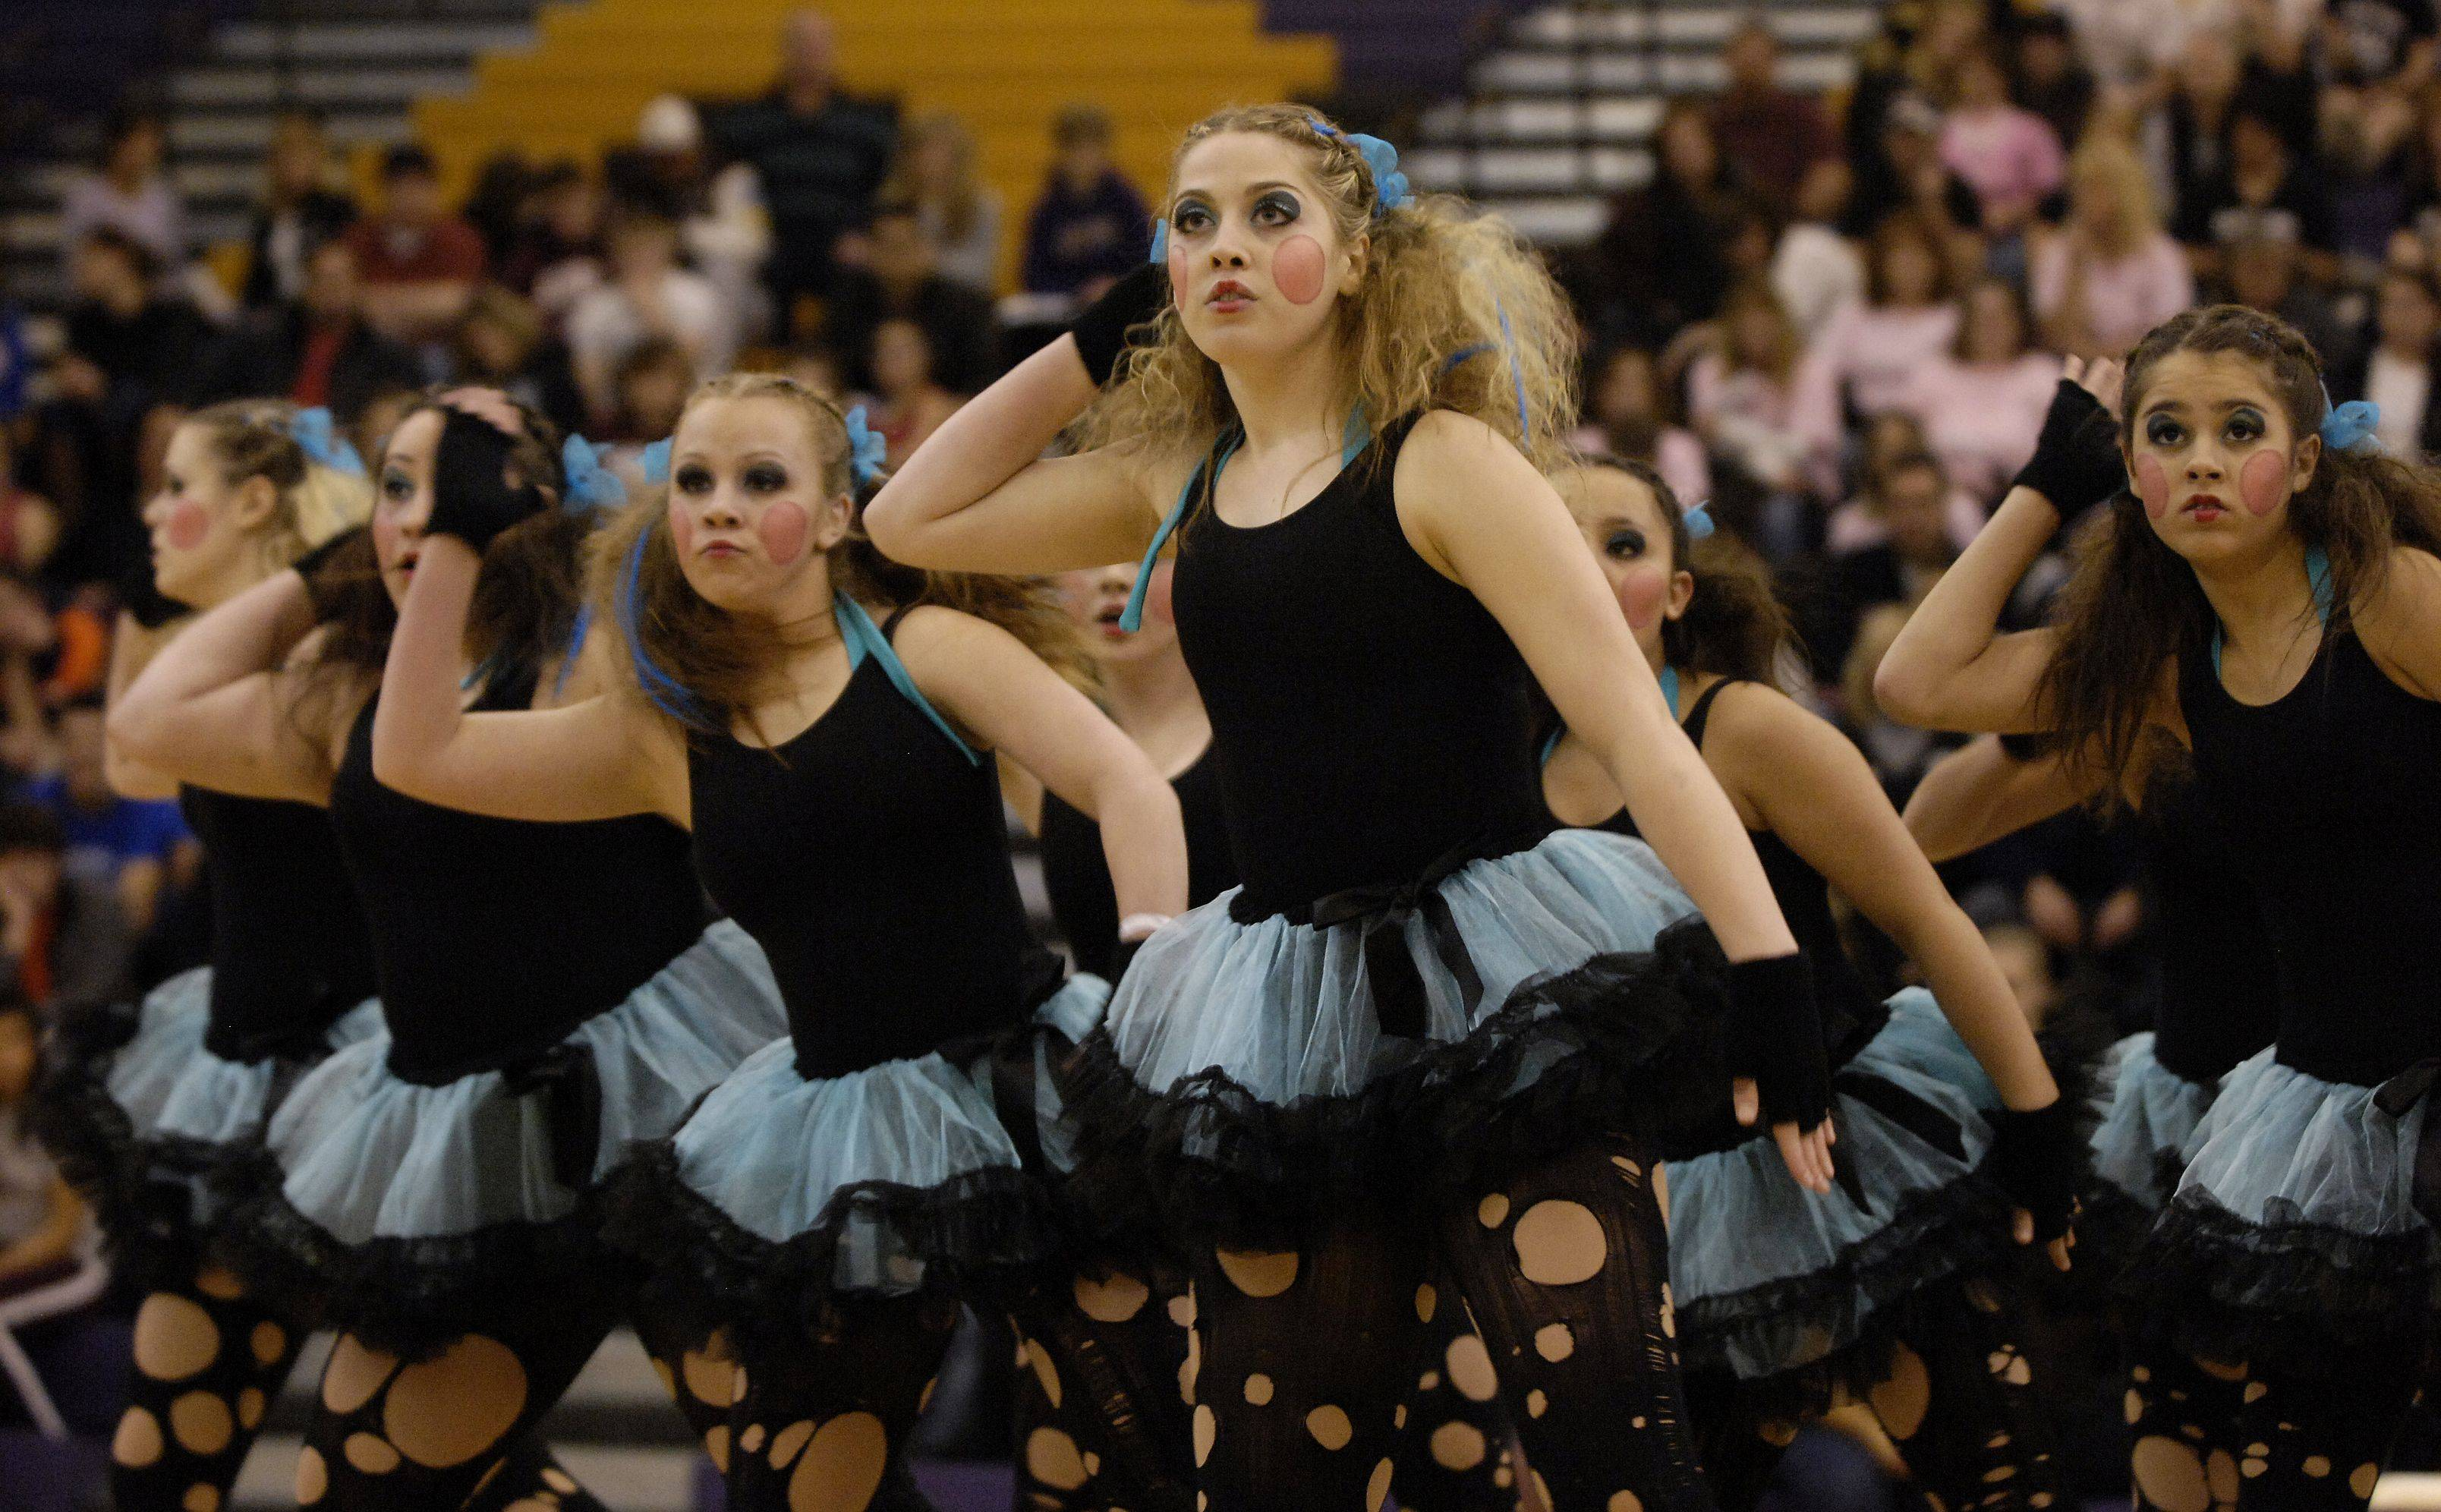 Maine West High School performs Sunday in the AAA Hip Hop division during the Team Dance Illinois Wauconda Invitational competition at Wauconda High School.